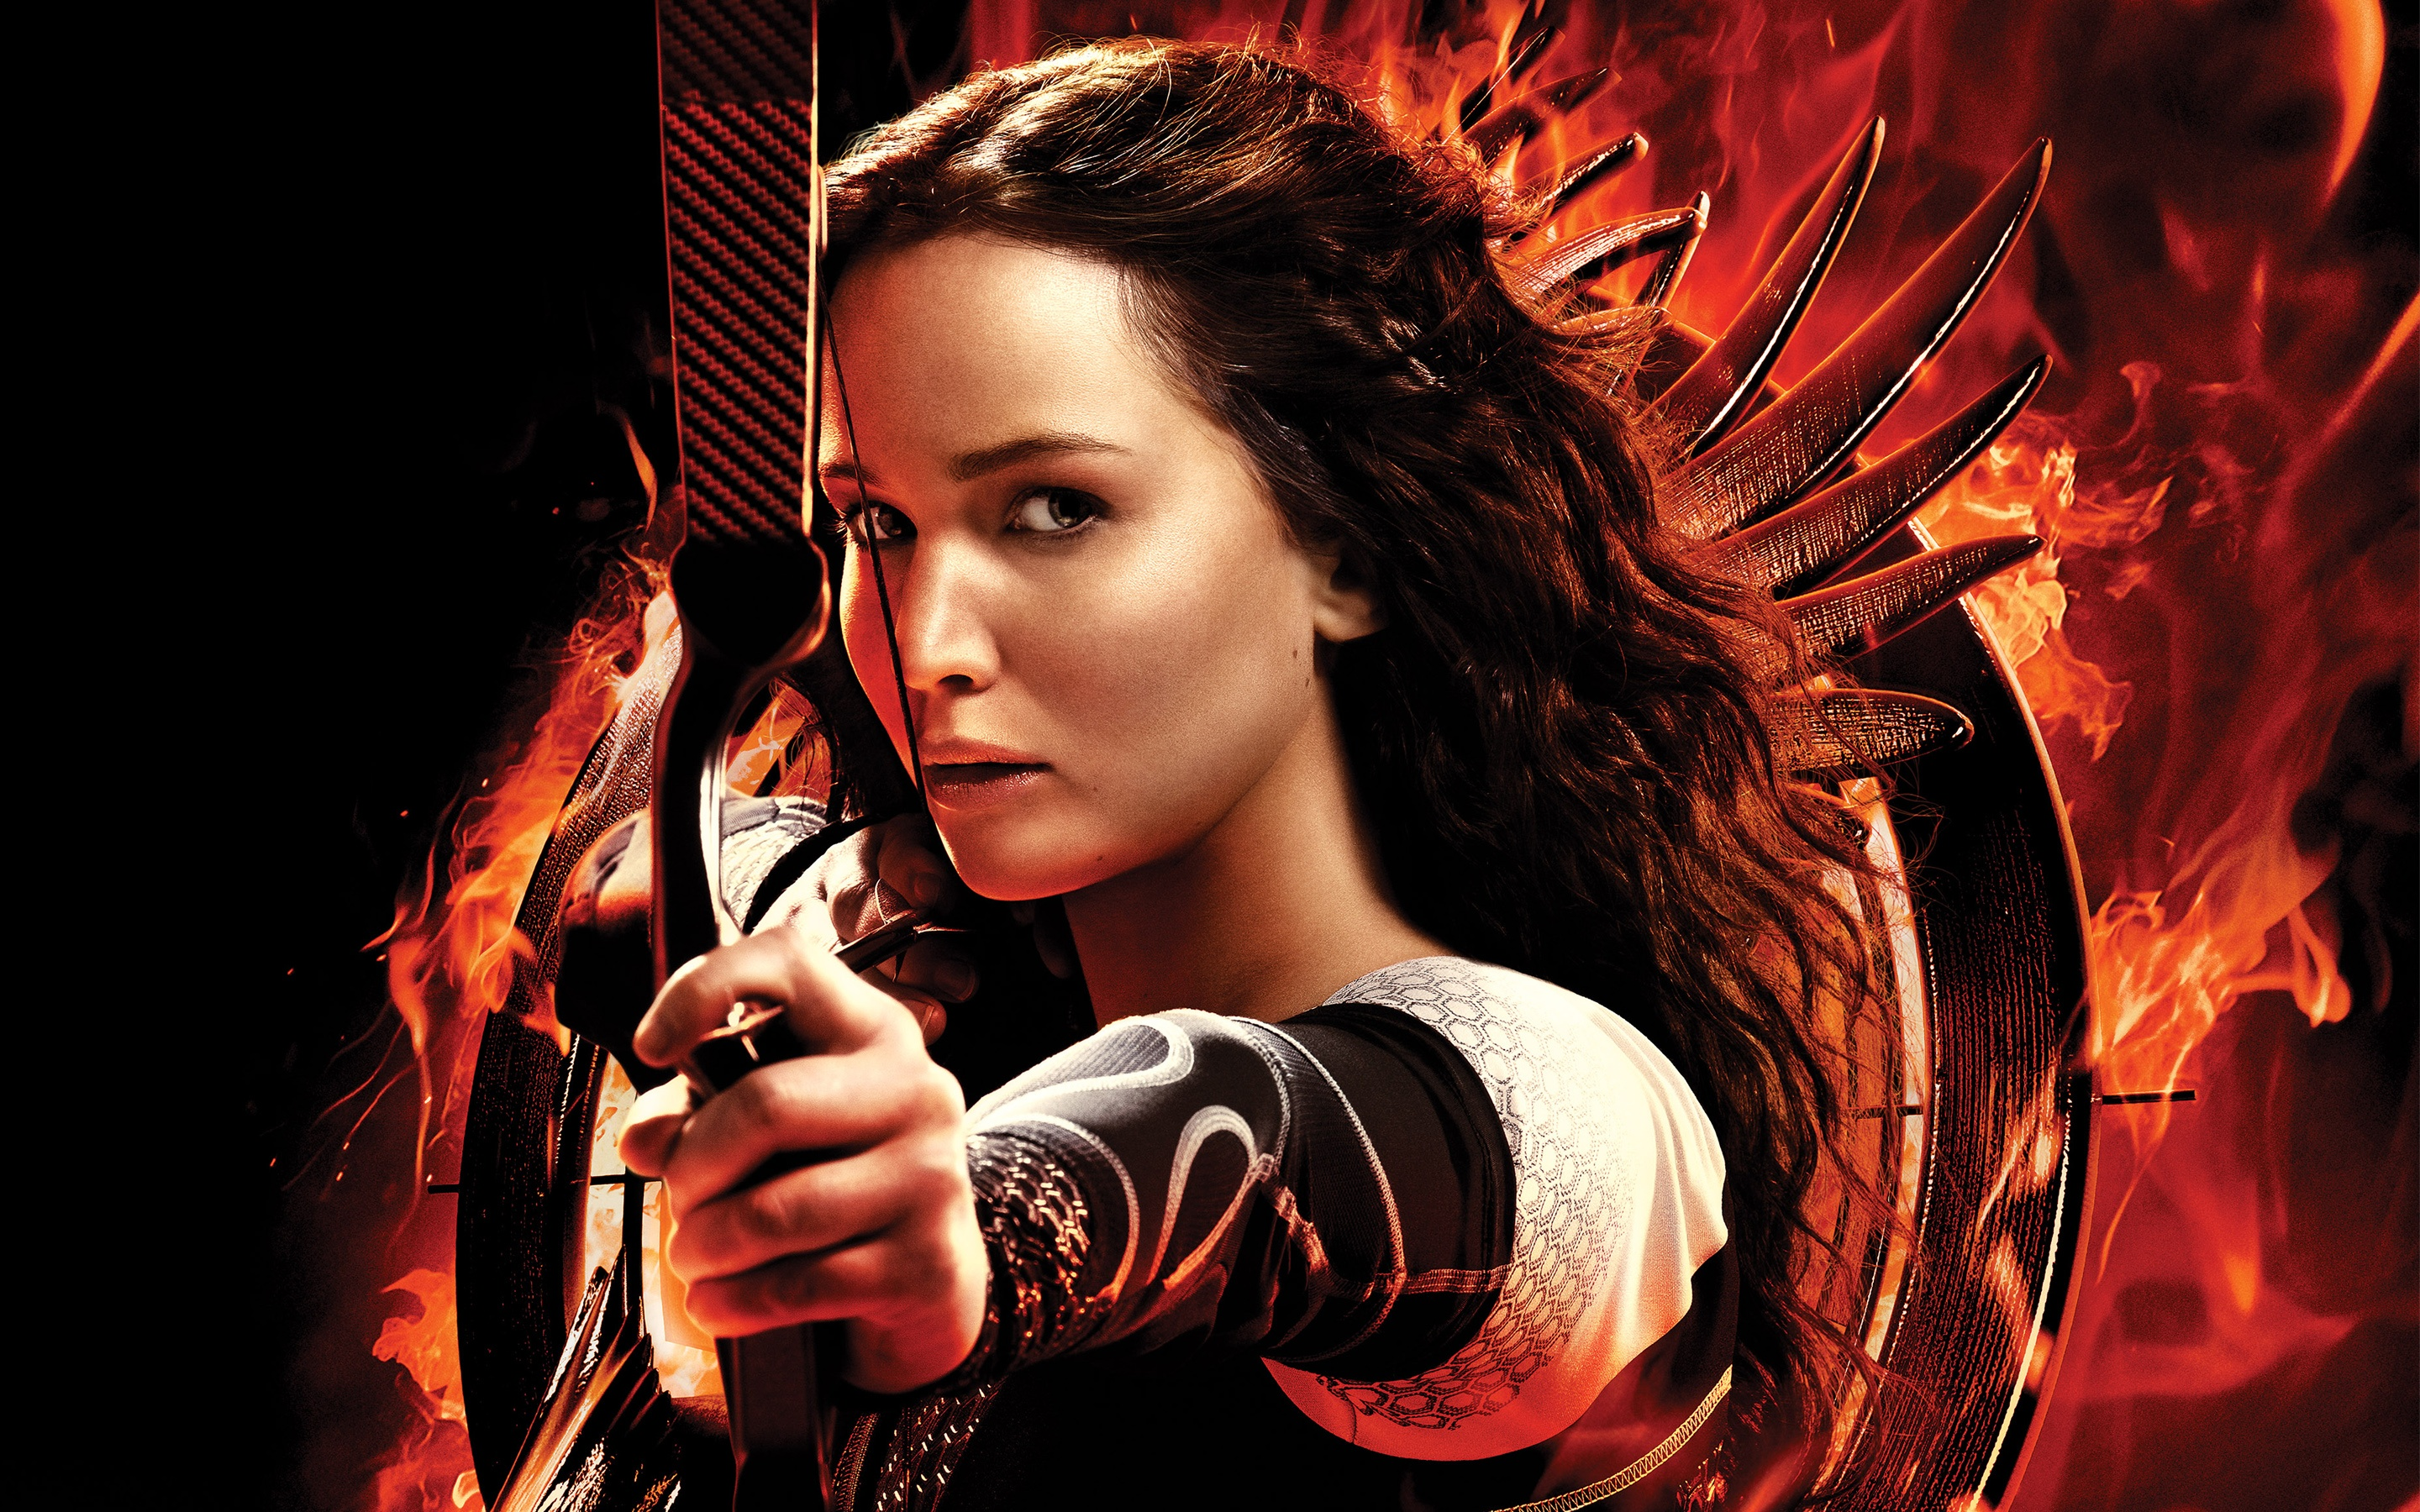 Katniss Everdeen, the protagonist of the 'Hunger Games' movies portrayed by Jennifer Lawrence.